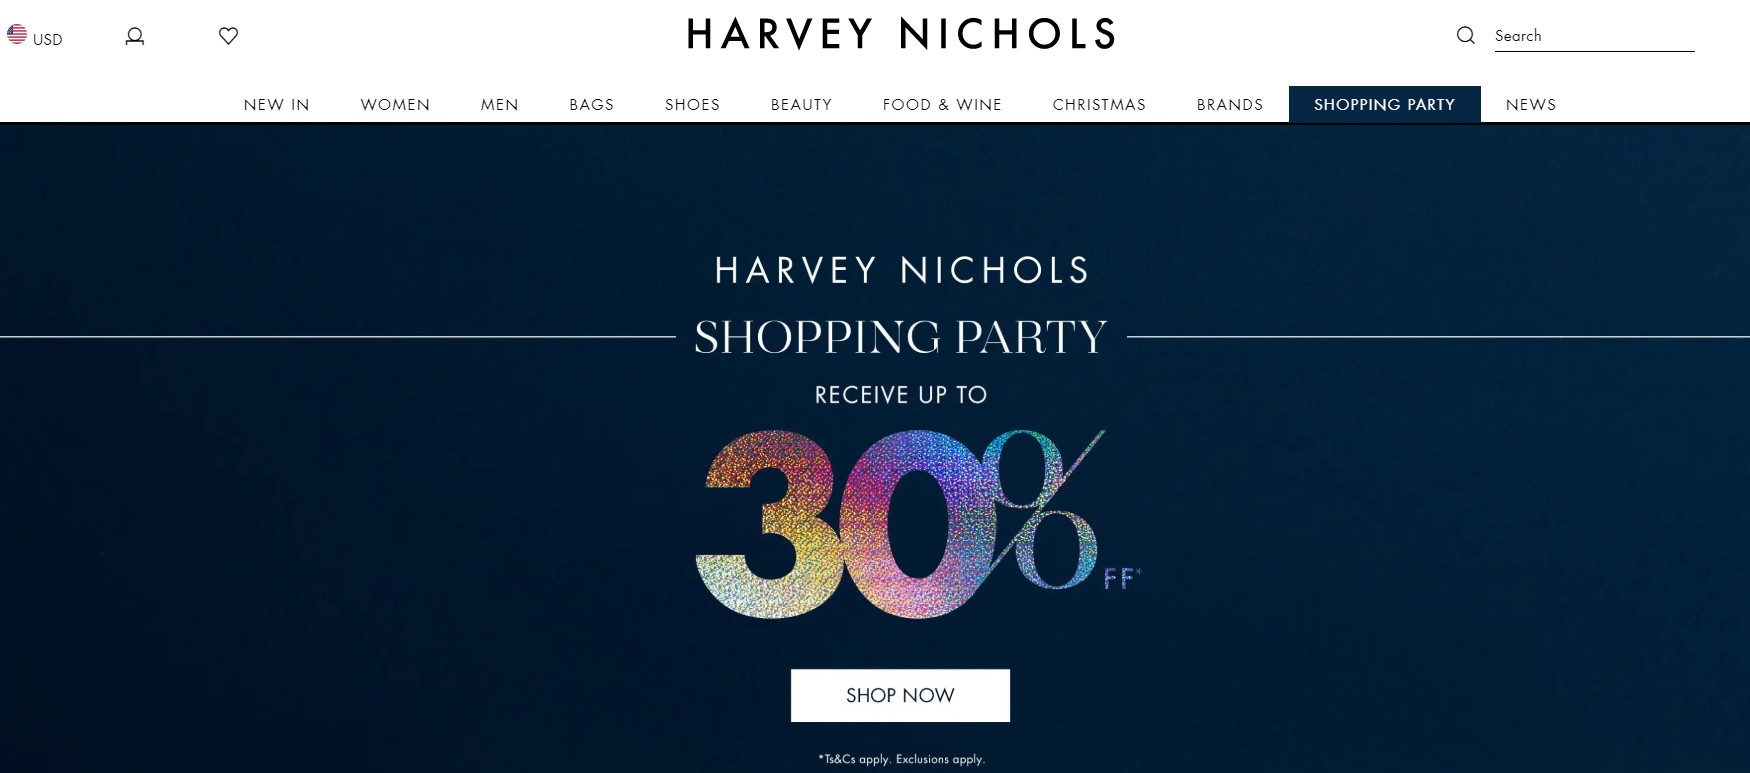 Sale announcement on the top of the homepage on the Harvey Nichols website